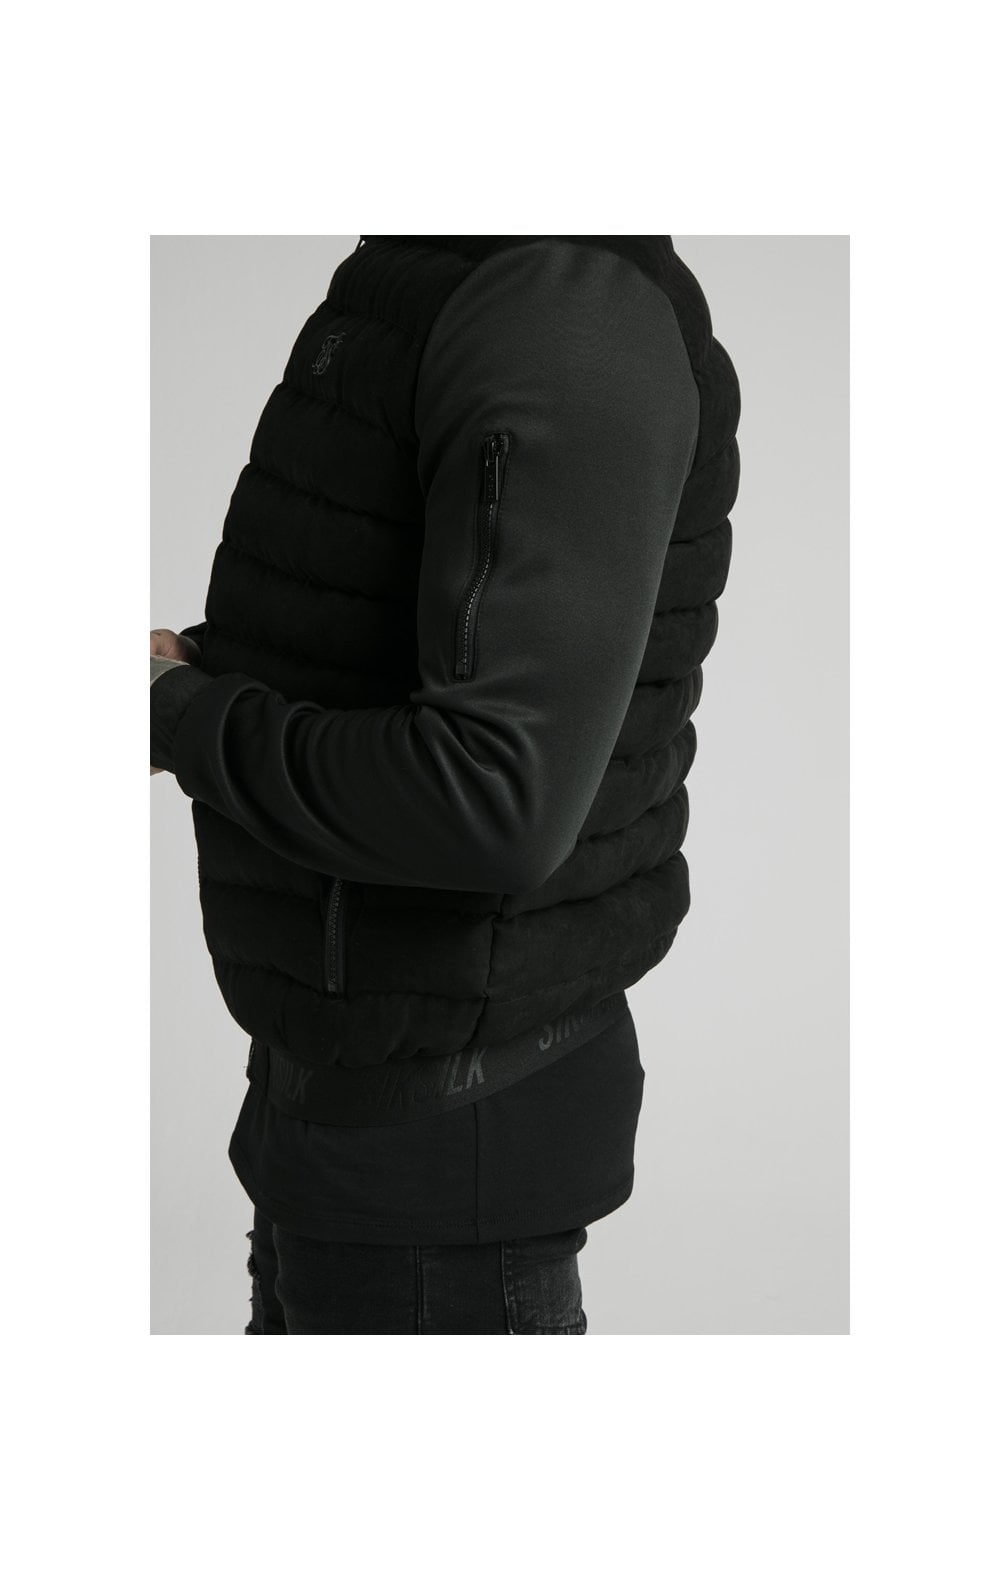 SikSilk Storm Bubble Jacket - Black (1)